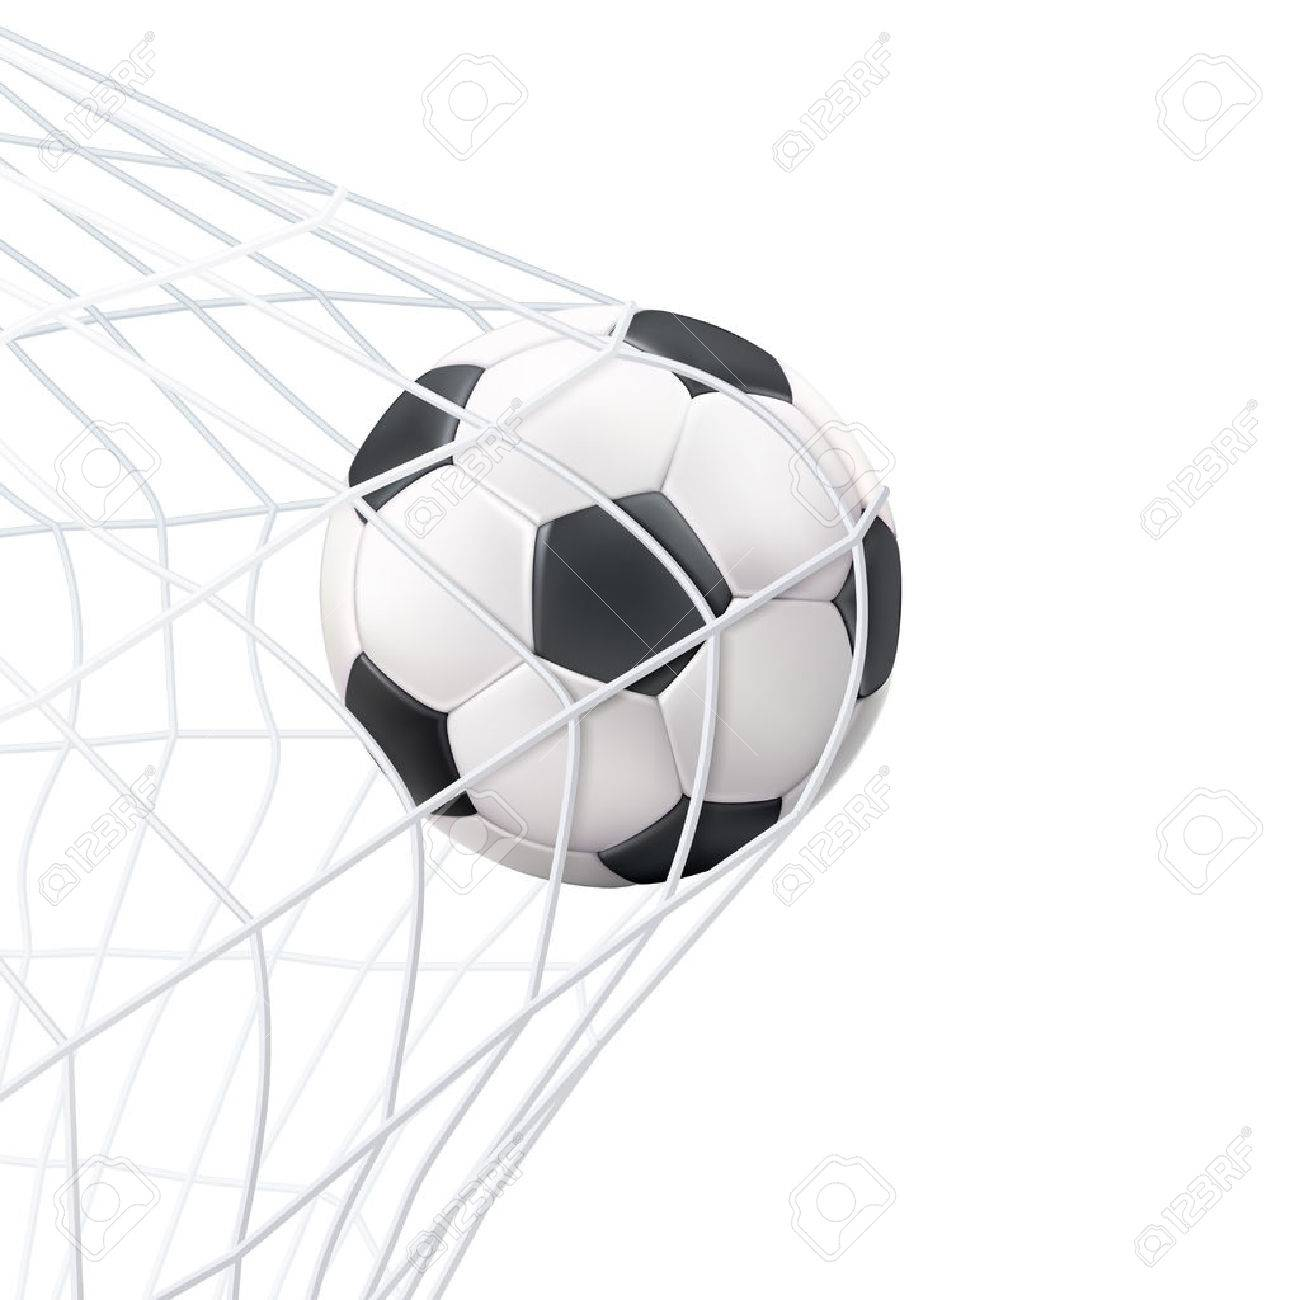 Soccer game match goal moment with ball in the net black white picture vector illustration Stock Vector - 51757292